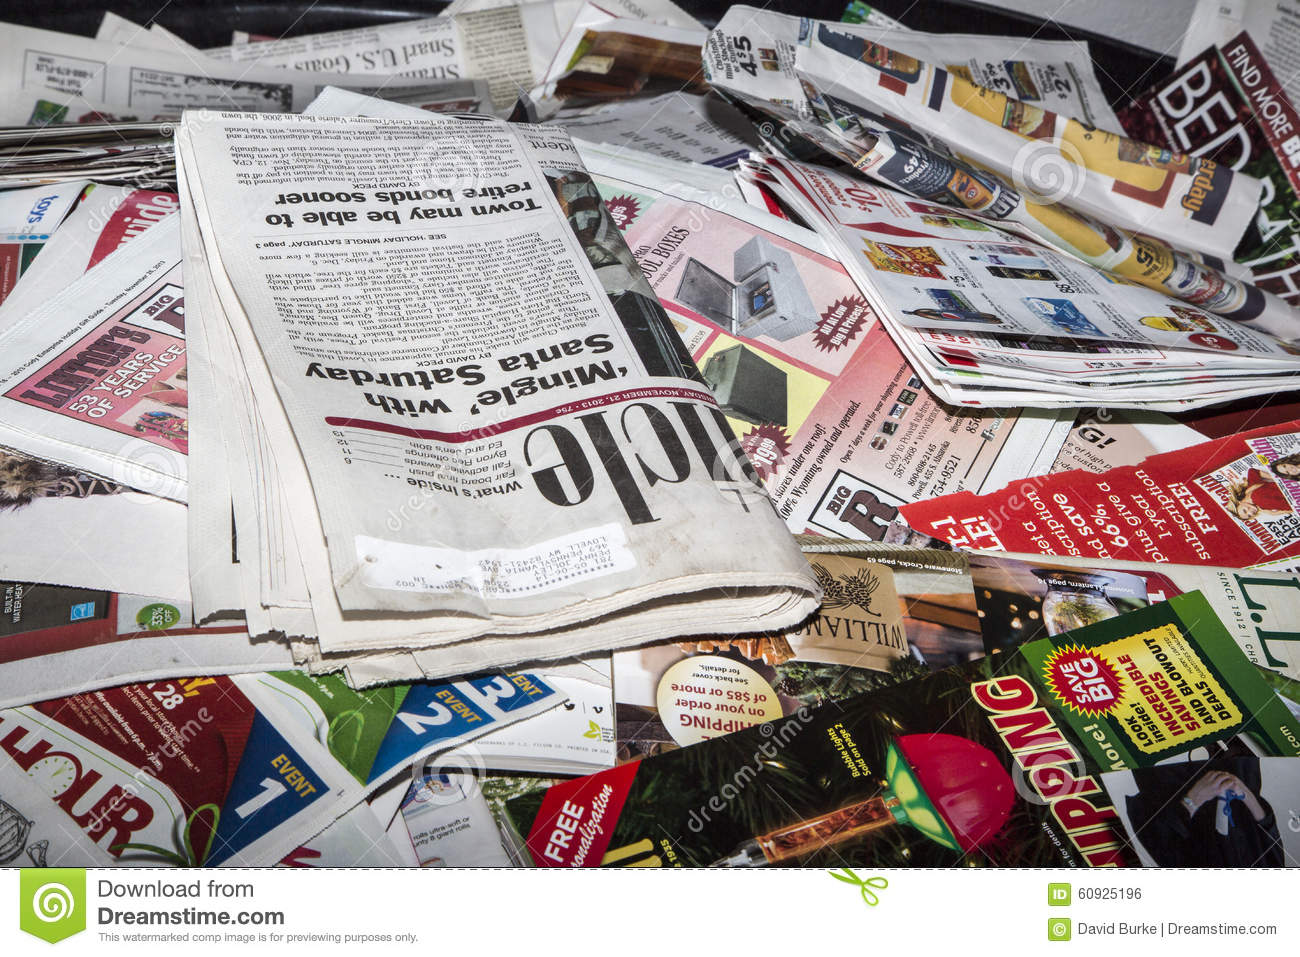 012 Newspaper Recycling Pile Newpaper Newsprint Magazines Collected To Recycle Essay Example That Publish Personal Unforgettable Essays India Uk Full